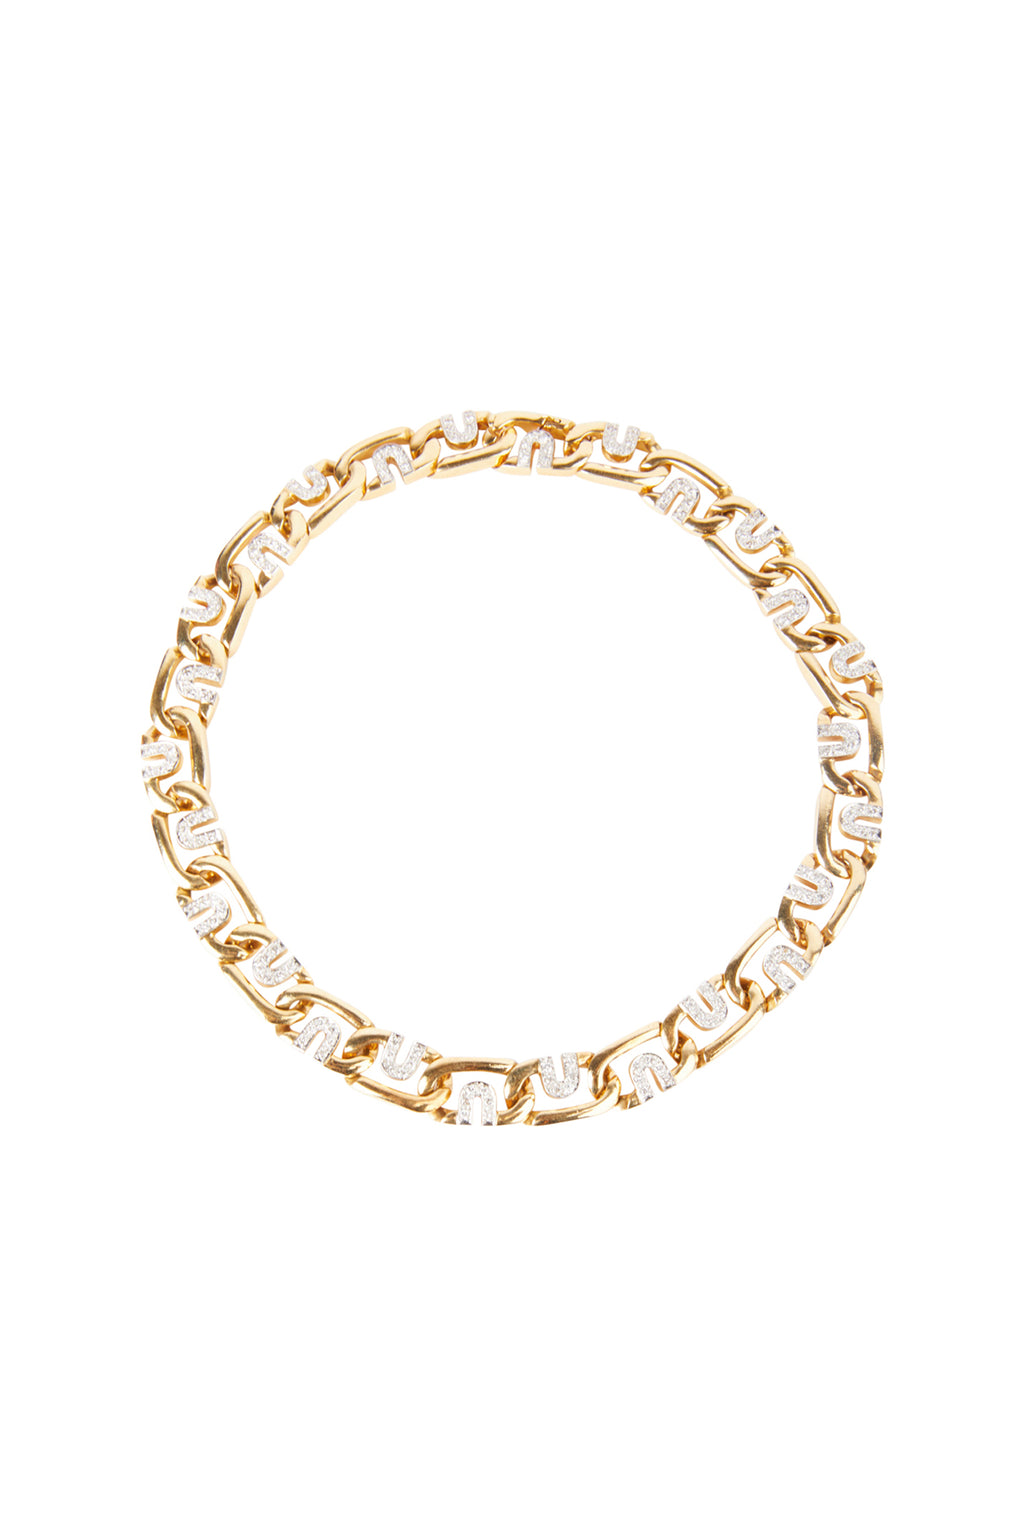 Diamond Gold Chocker Necklace